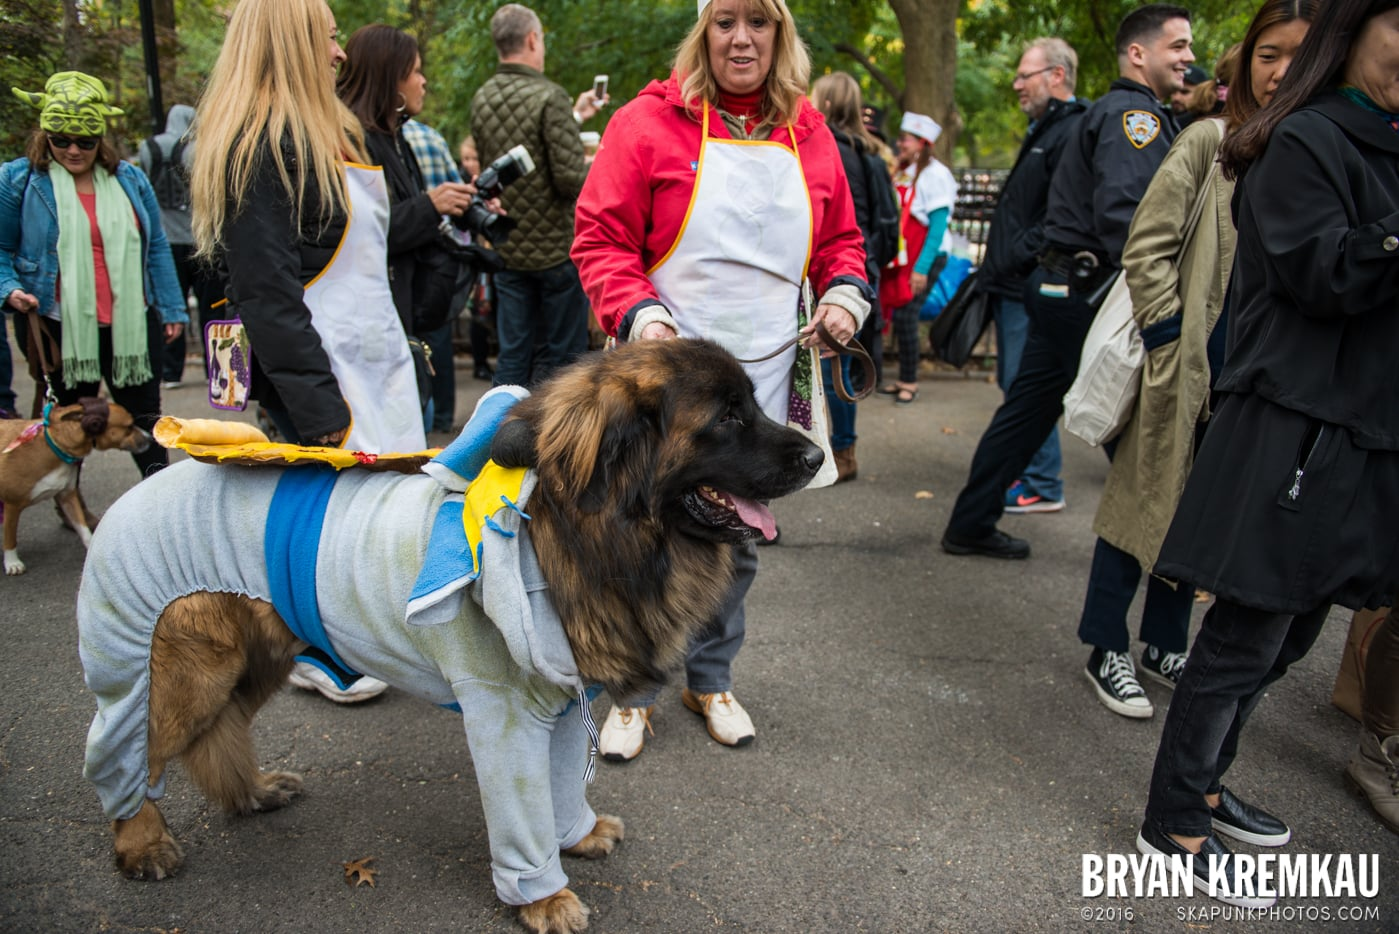 Tompkins Square Halloween Dog Parade 2015 @ Tompkins Square Park, NYC – 10.24.15 (56)